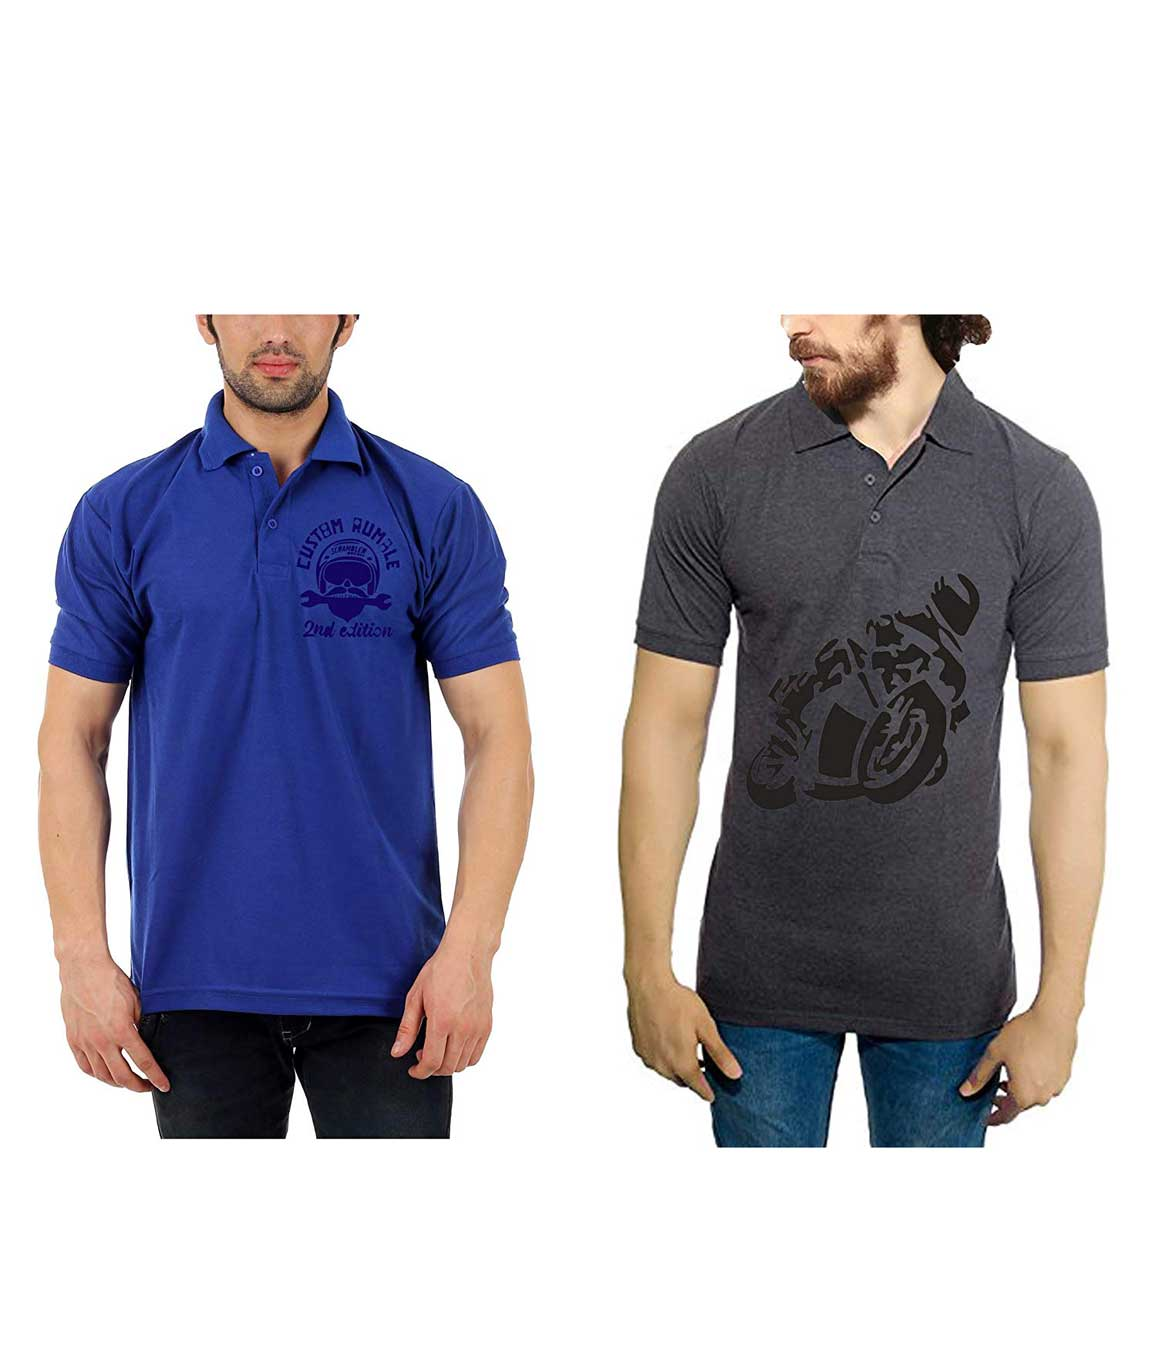 Vestiario Biker Combo of 2 Polo Neck T-Shirts with Free Cap and Key Chain